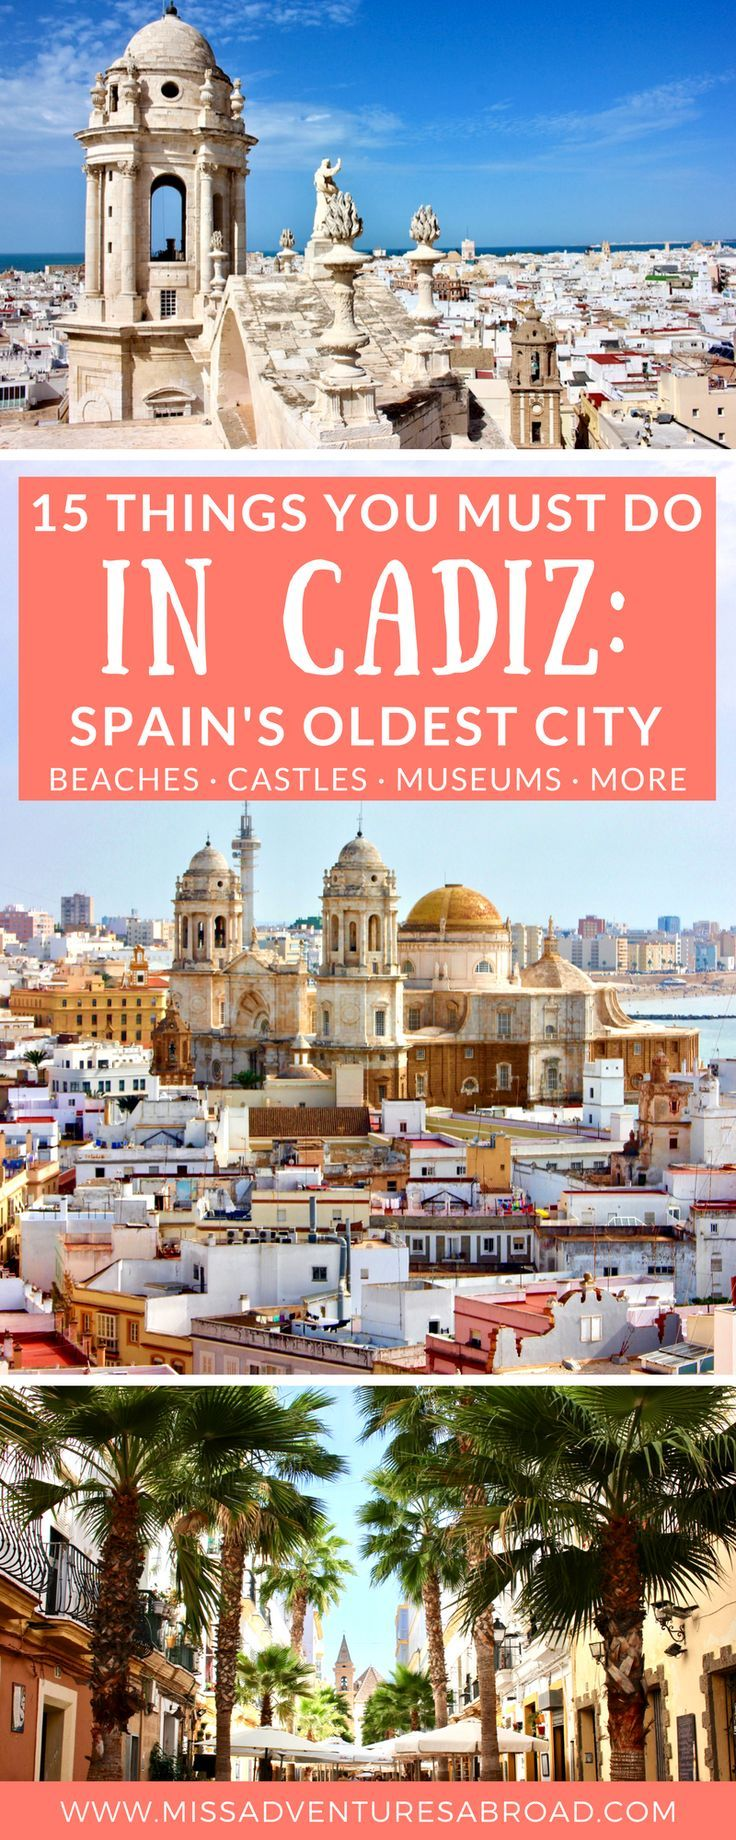 15 Cool Things To Do In Cádiz: Spain's Oldest C…